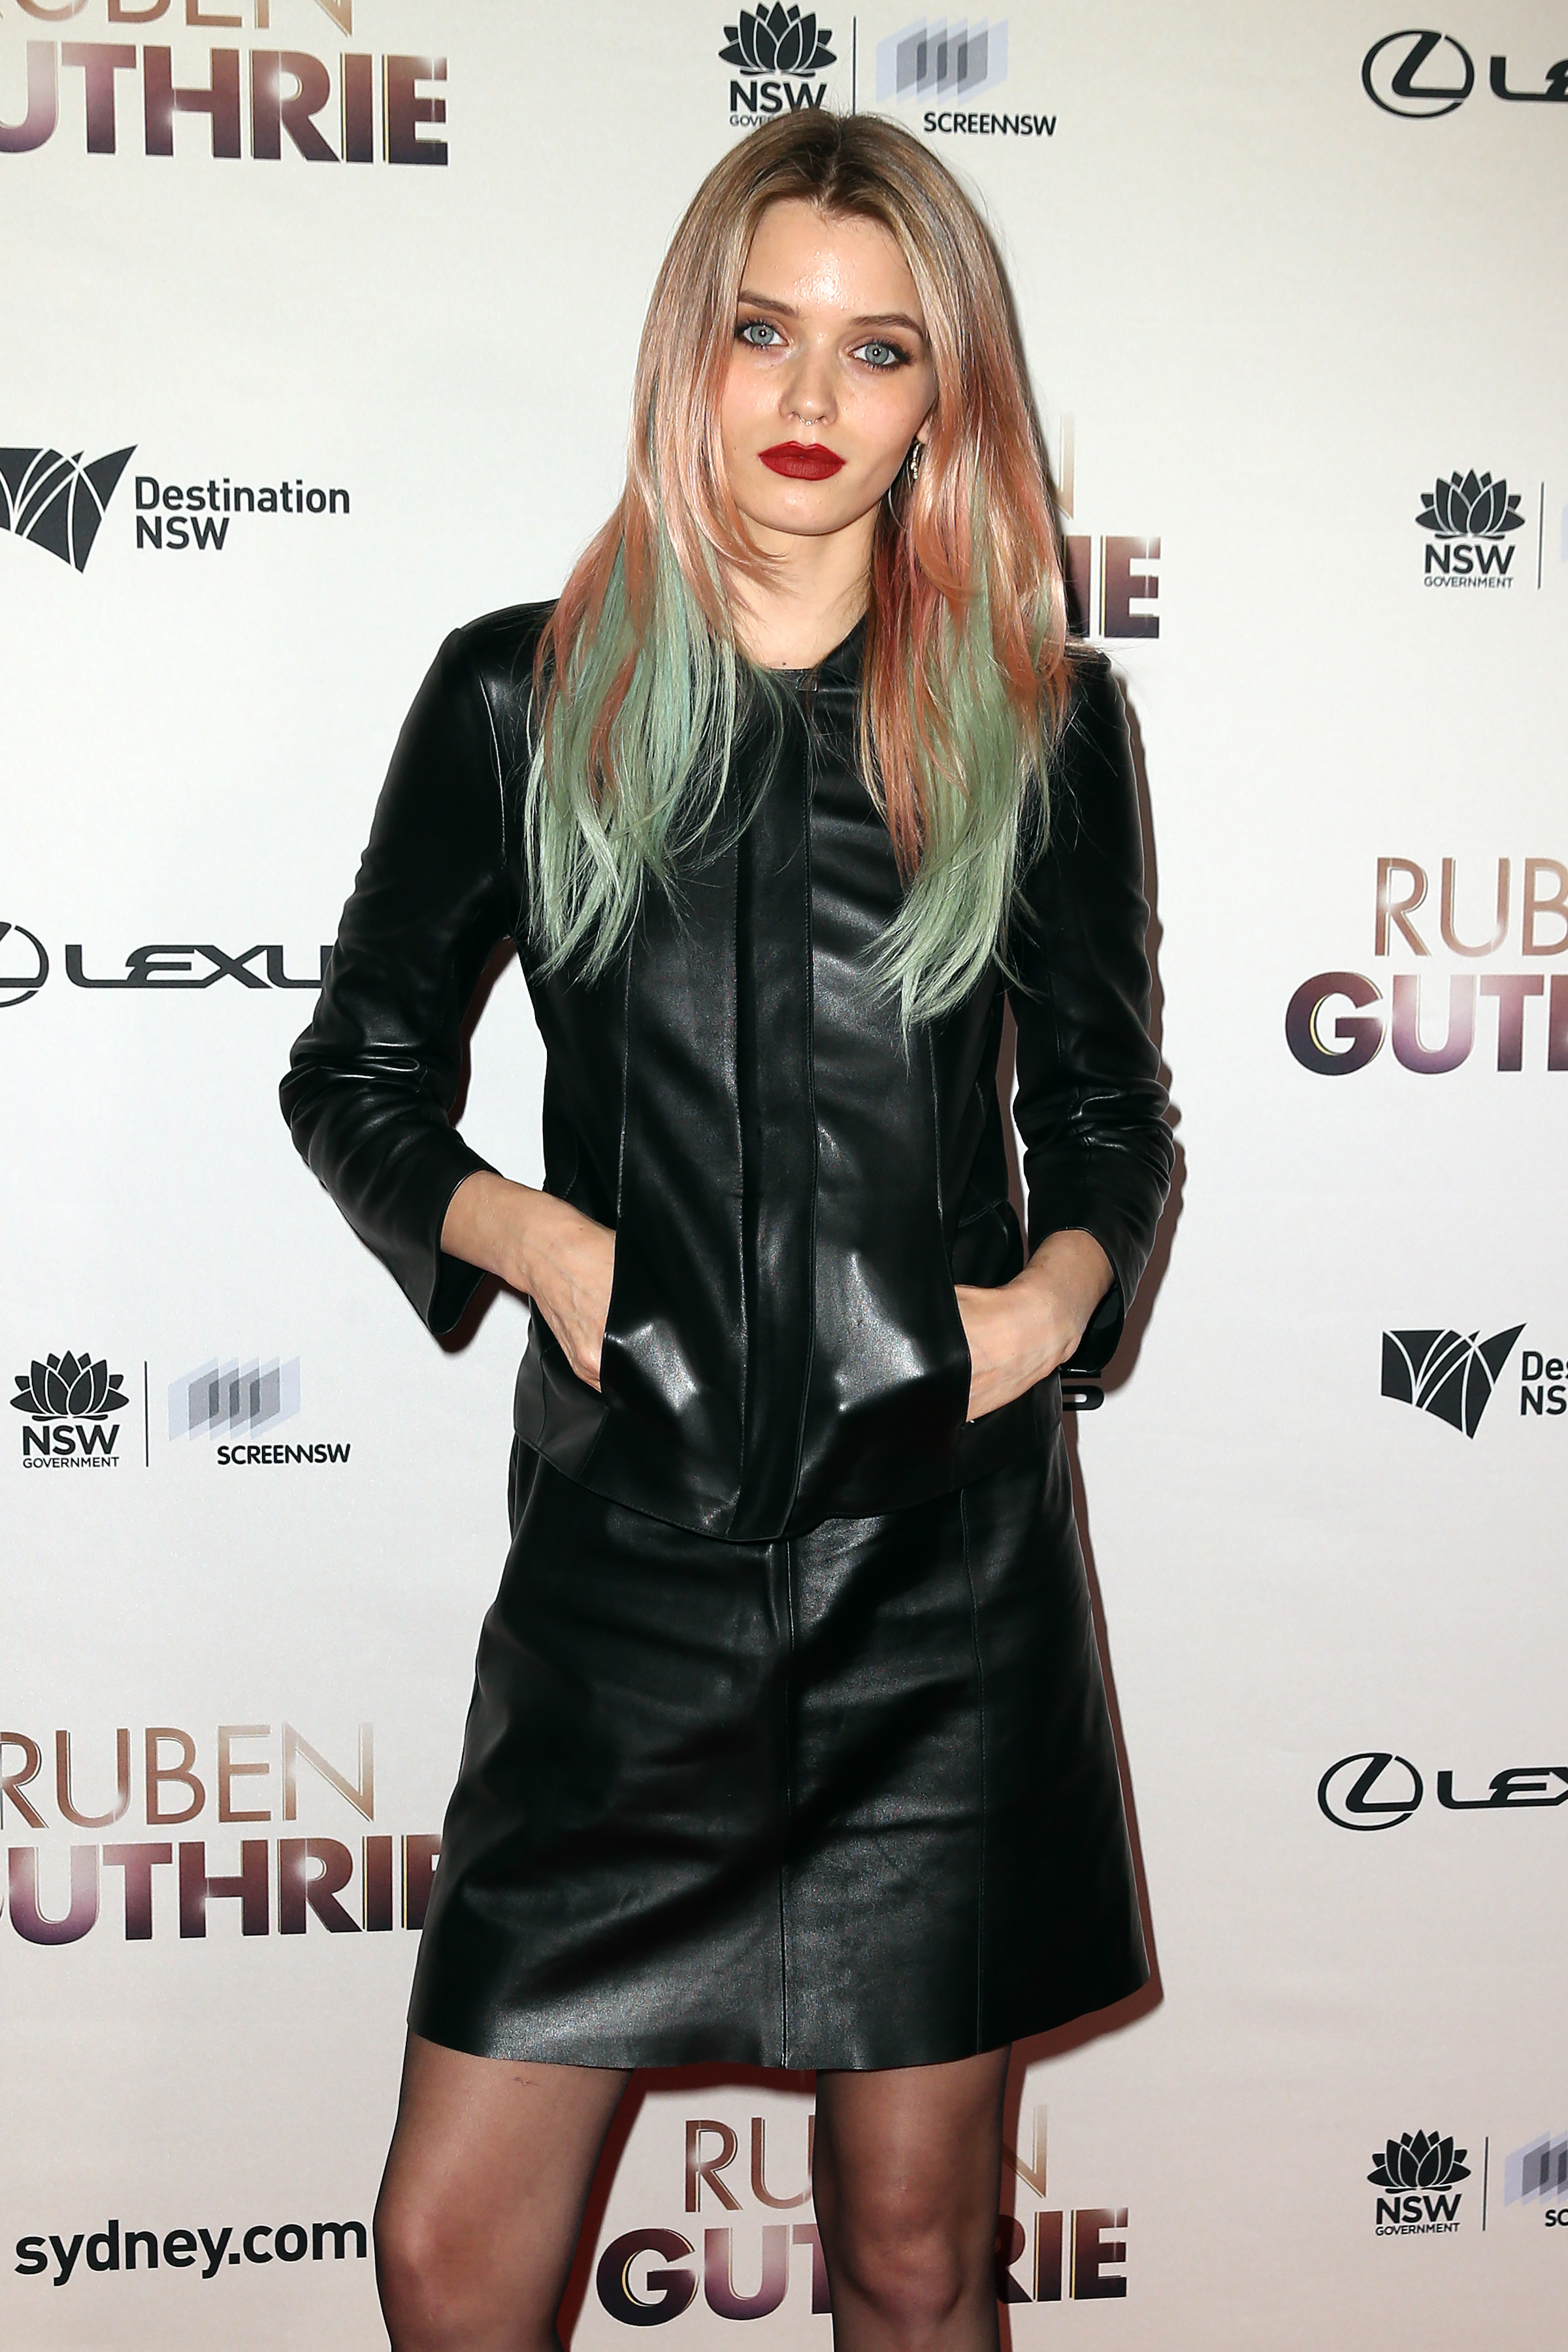 Scanlan PR negotiated forAbbey Lee Kershaw, campaign model for BOSS Womenswear 2015, to wear a BOSS look from the Resort 2016 collection to the Ruben Guthrie premier in Sydney on Thursday, July 9 2015.